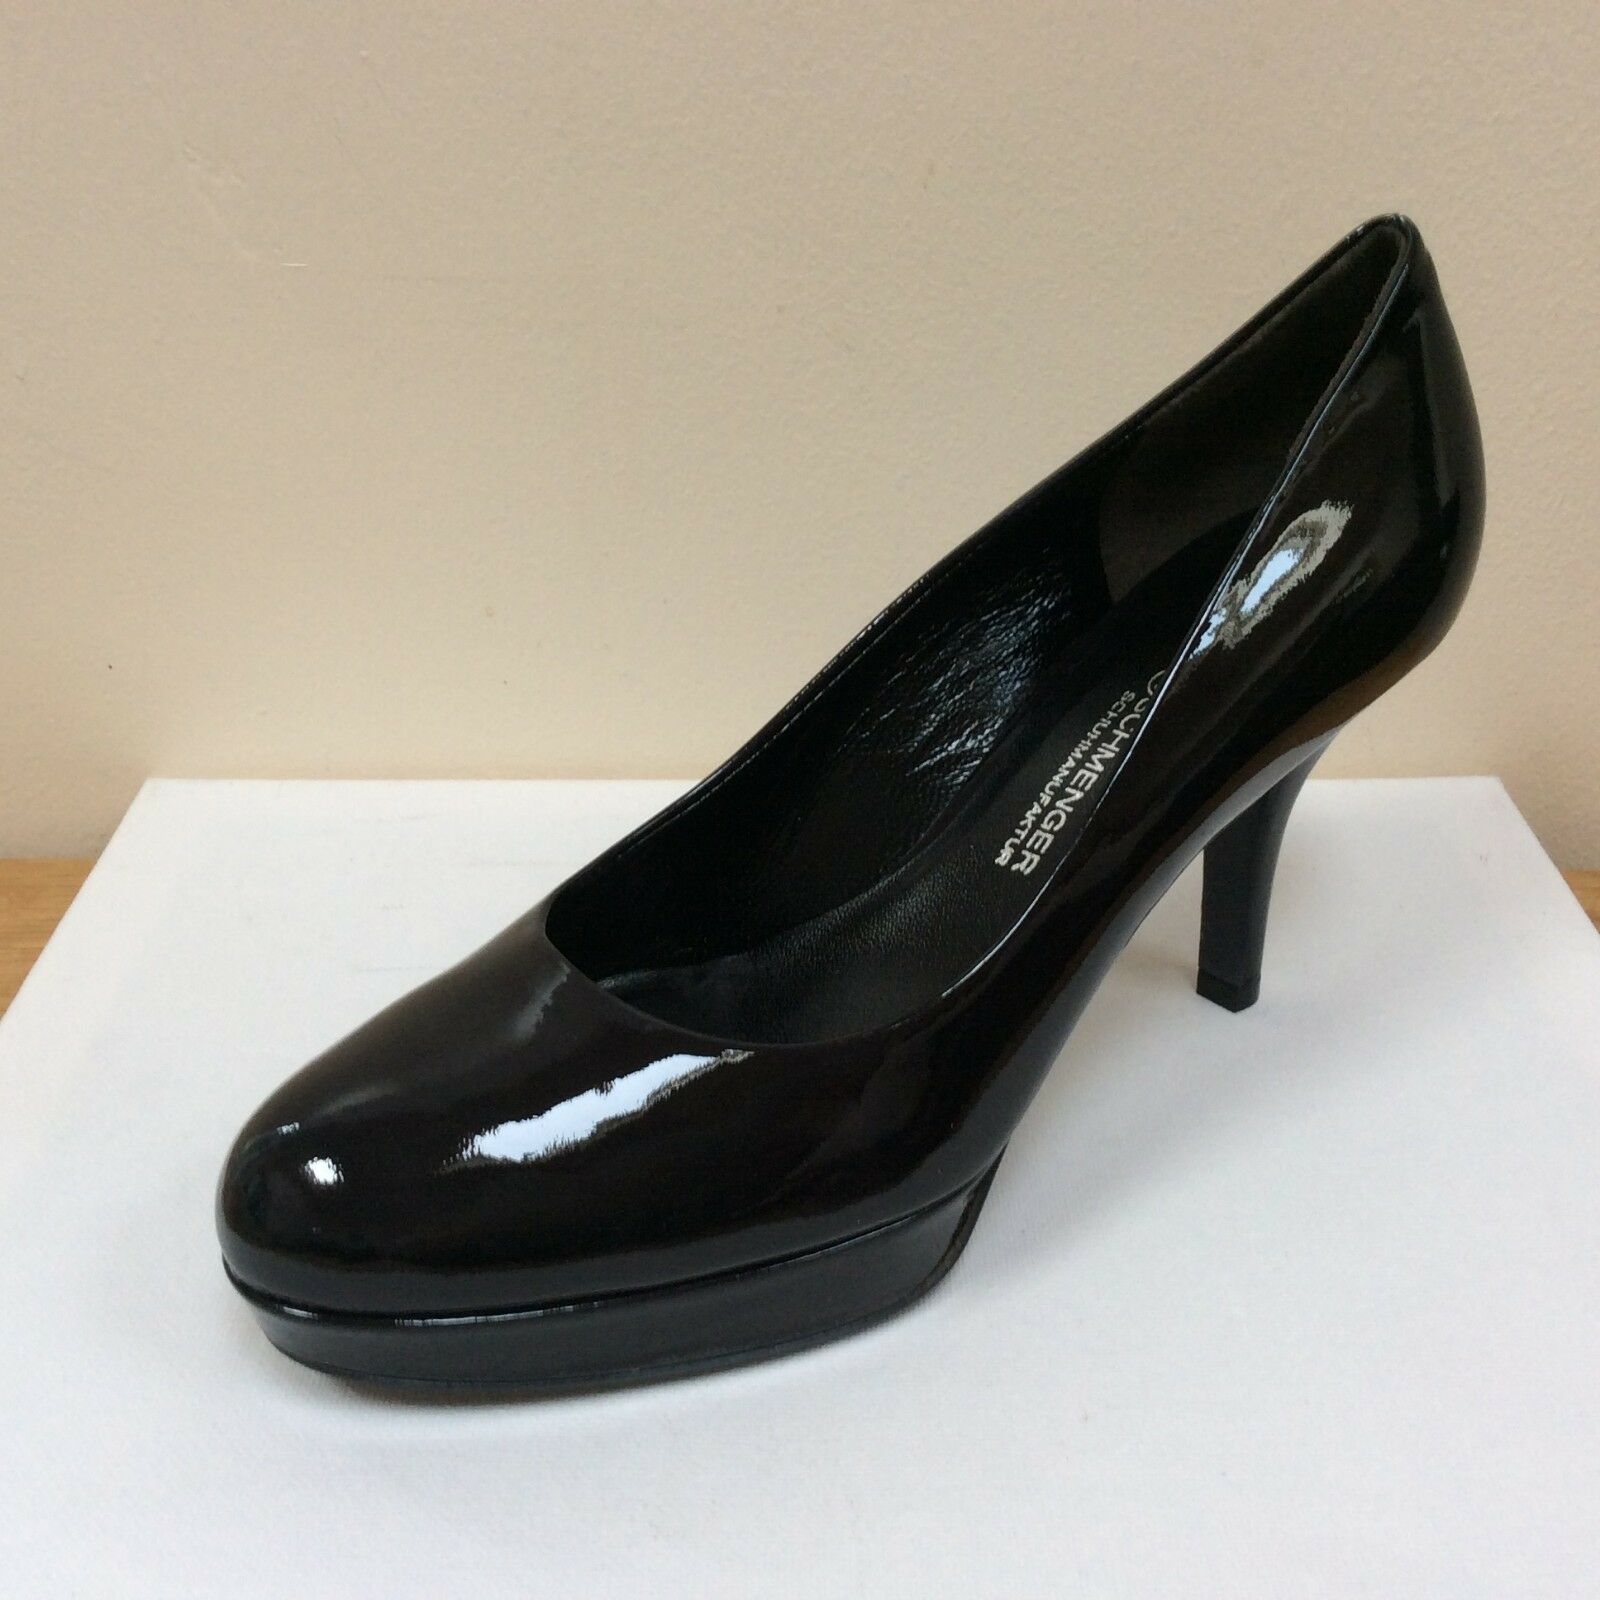 K&S Mika dark navy-ocean patent court shoes, UK 7 EU 40,   BNWB